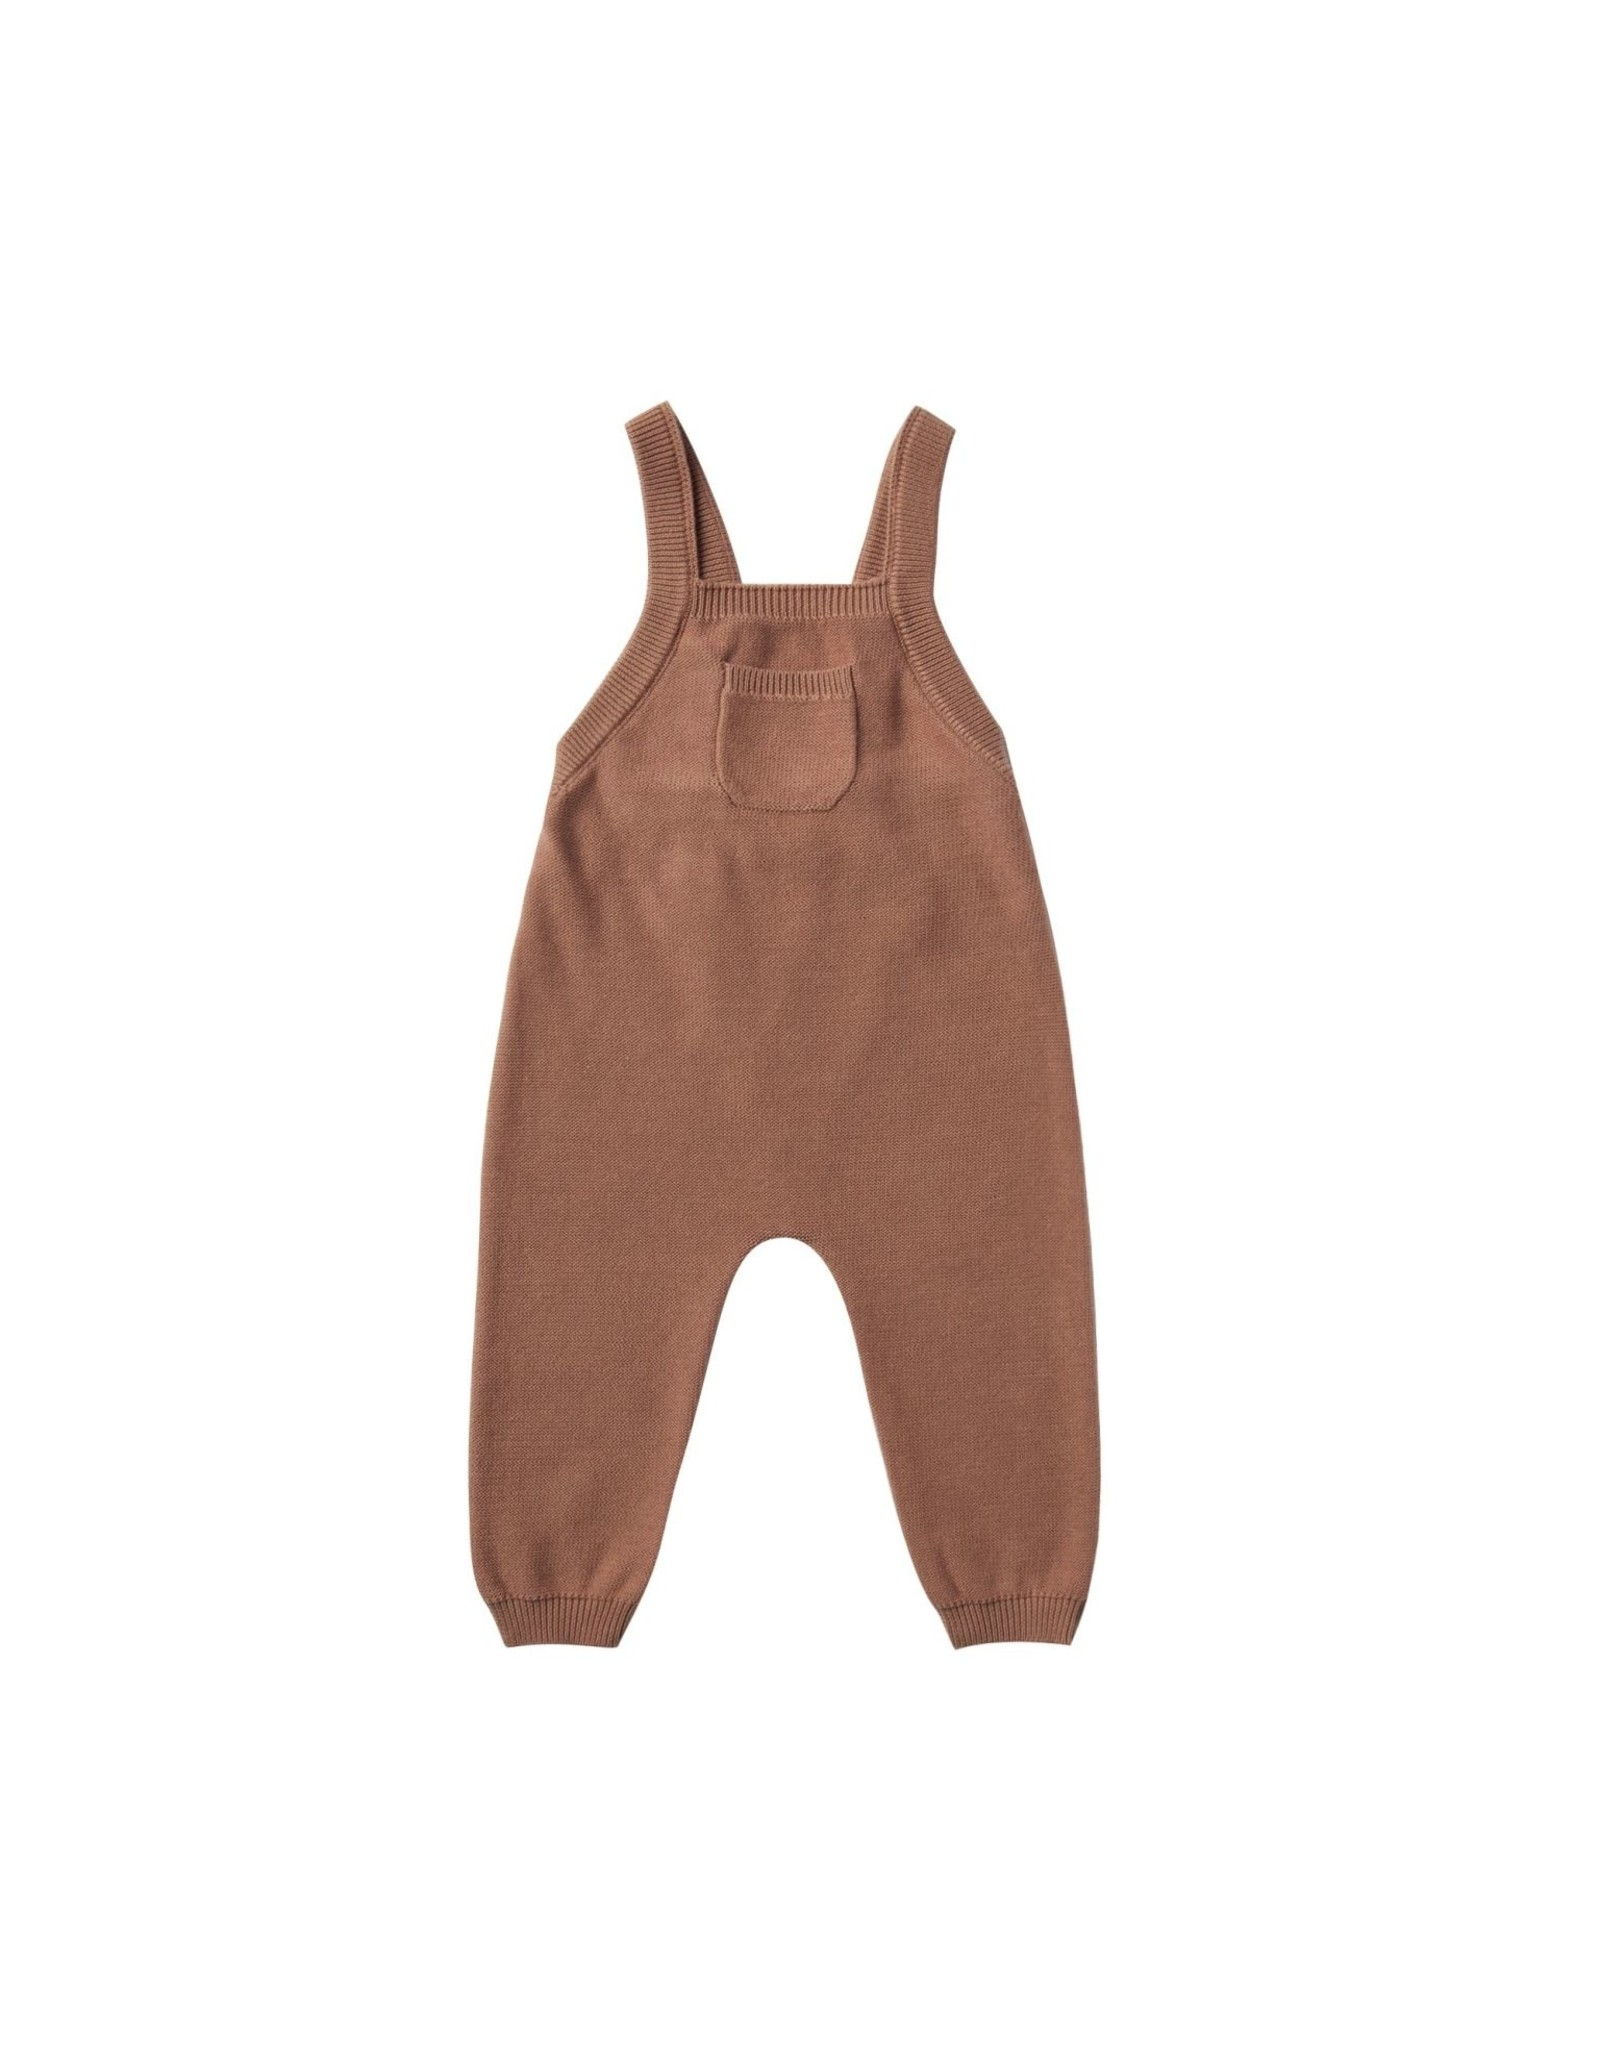 Quincy Mae knit overall- clay